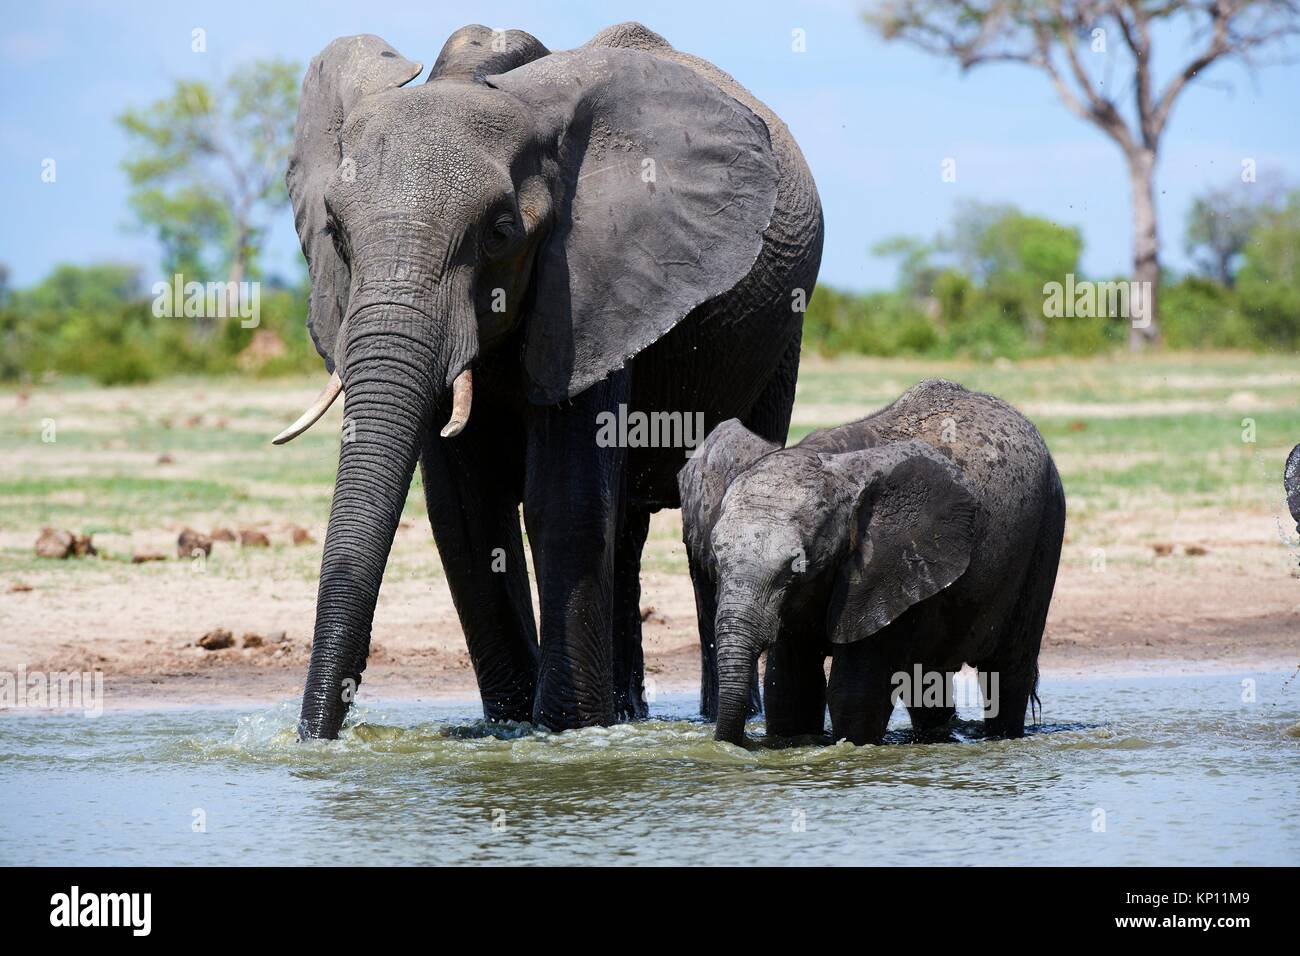 African elephant mother and calf (Loxodonta africana) drinking at a watehole. Hwange National Park, Zimbabwe. - Stock Image